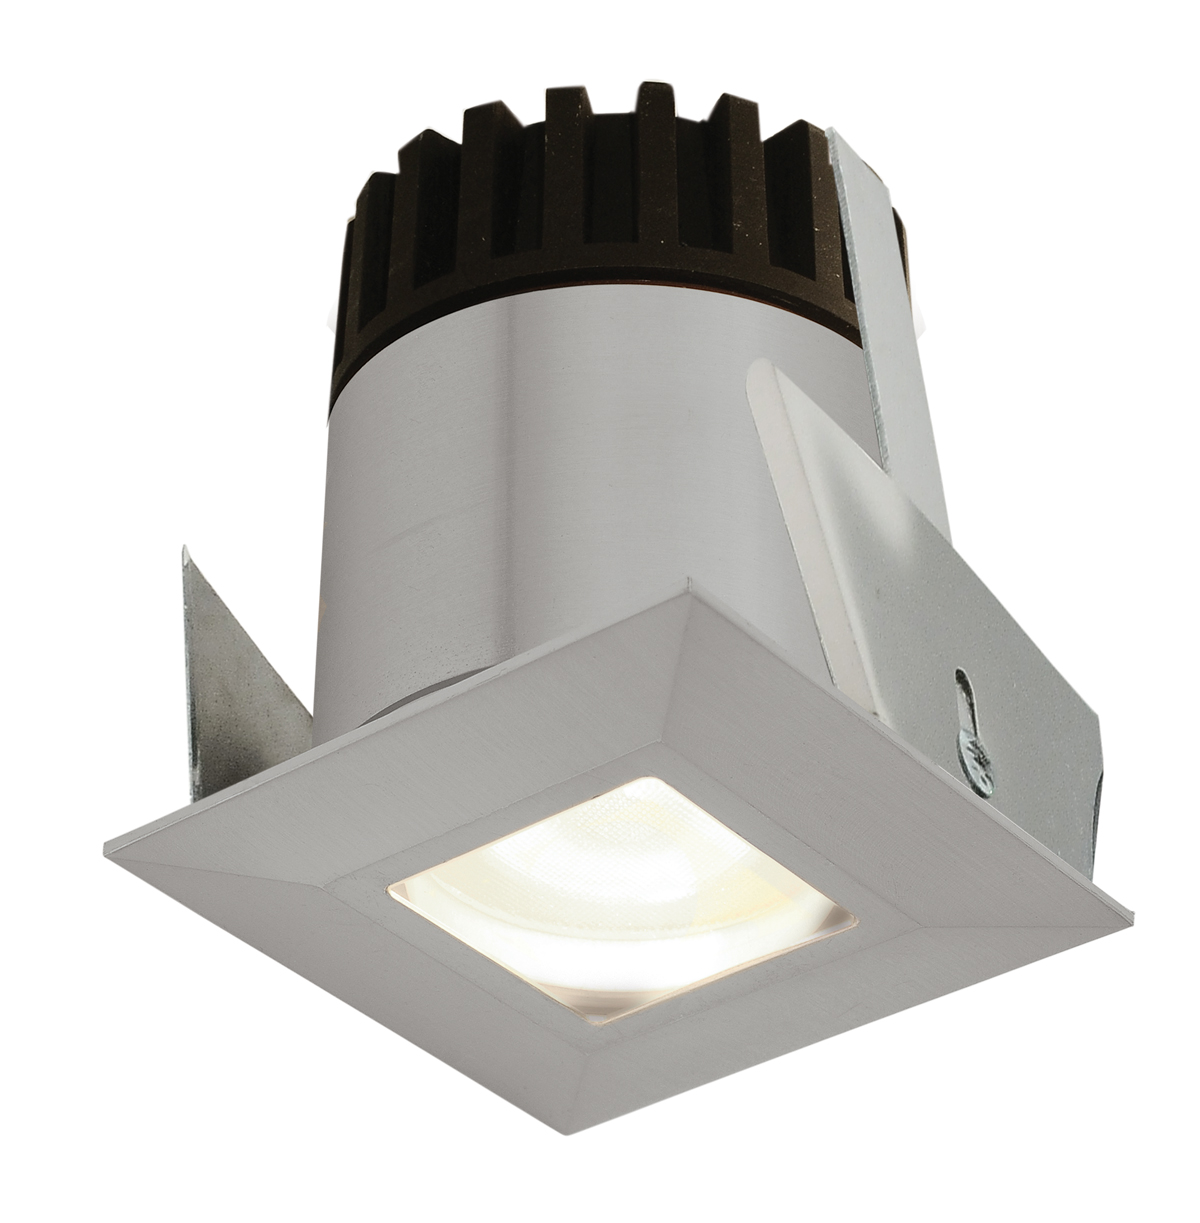 sun3c square led ceiling recessed by pureedge lighting sun3c hdl3 sq ww sa